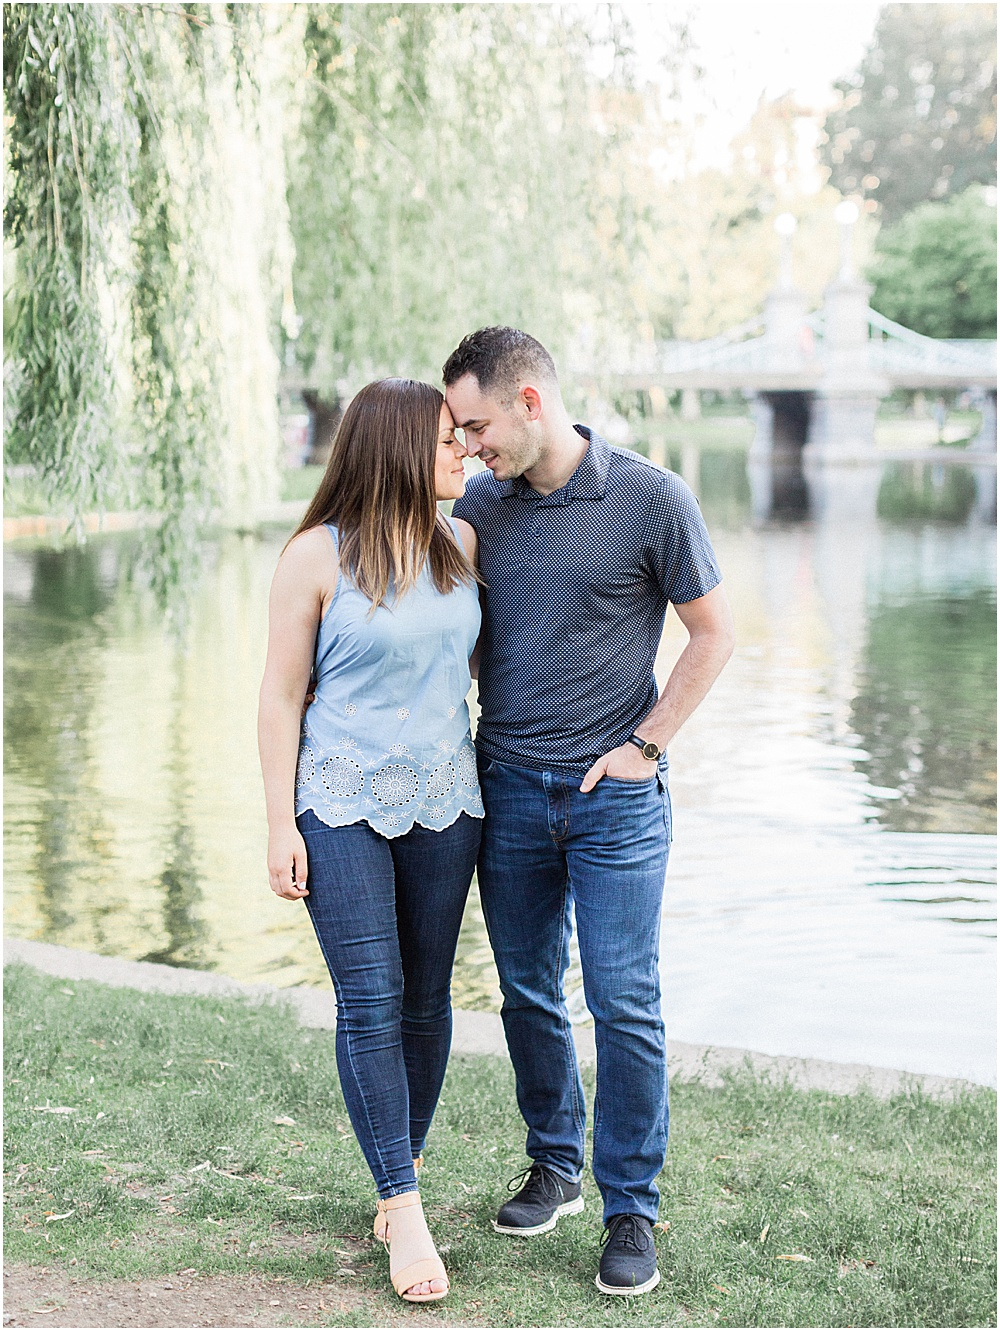 acorn_street_boston_common_garden_engagement_session_massachusetts_boston_wedding_photographer_meredith_jane_photography_photo_0457.jpg